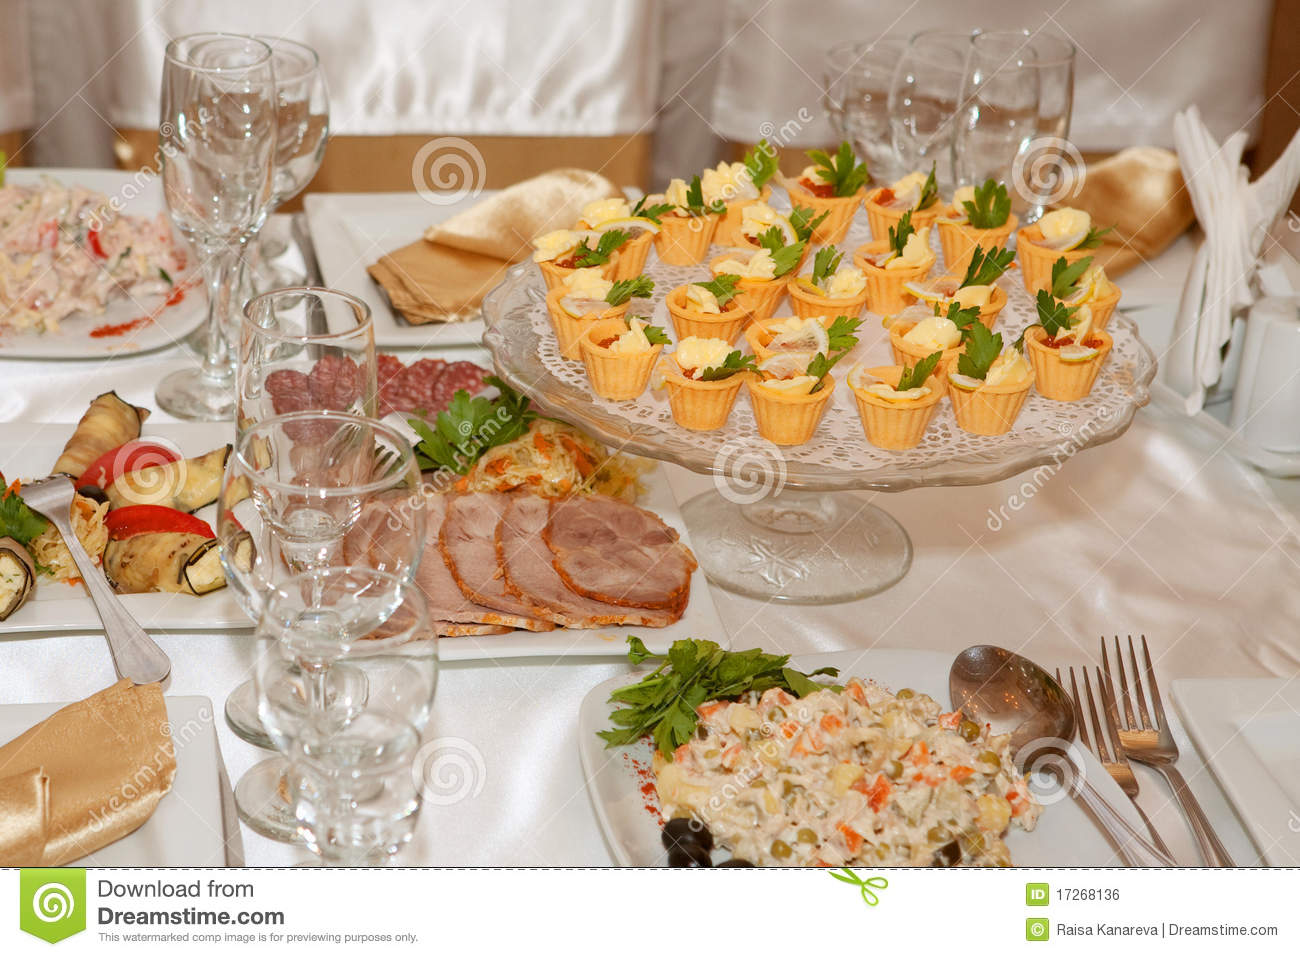 Banquet table with food stock photo. Image of banquet - 17268136